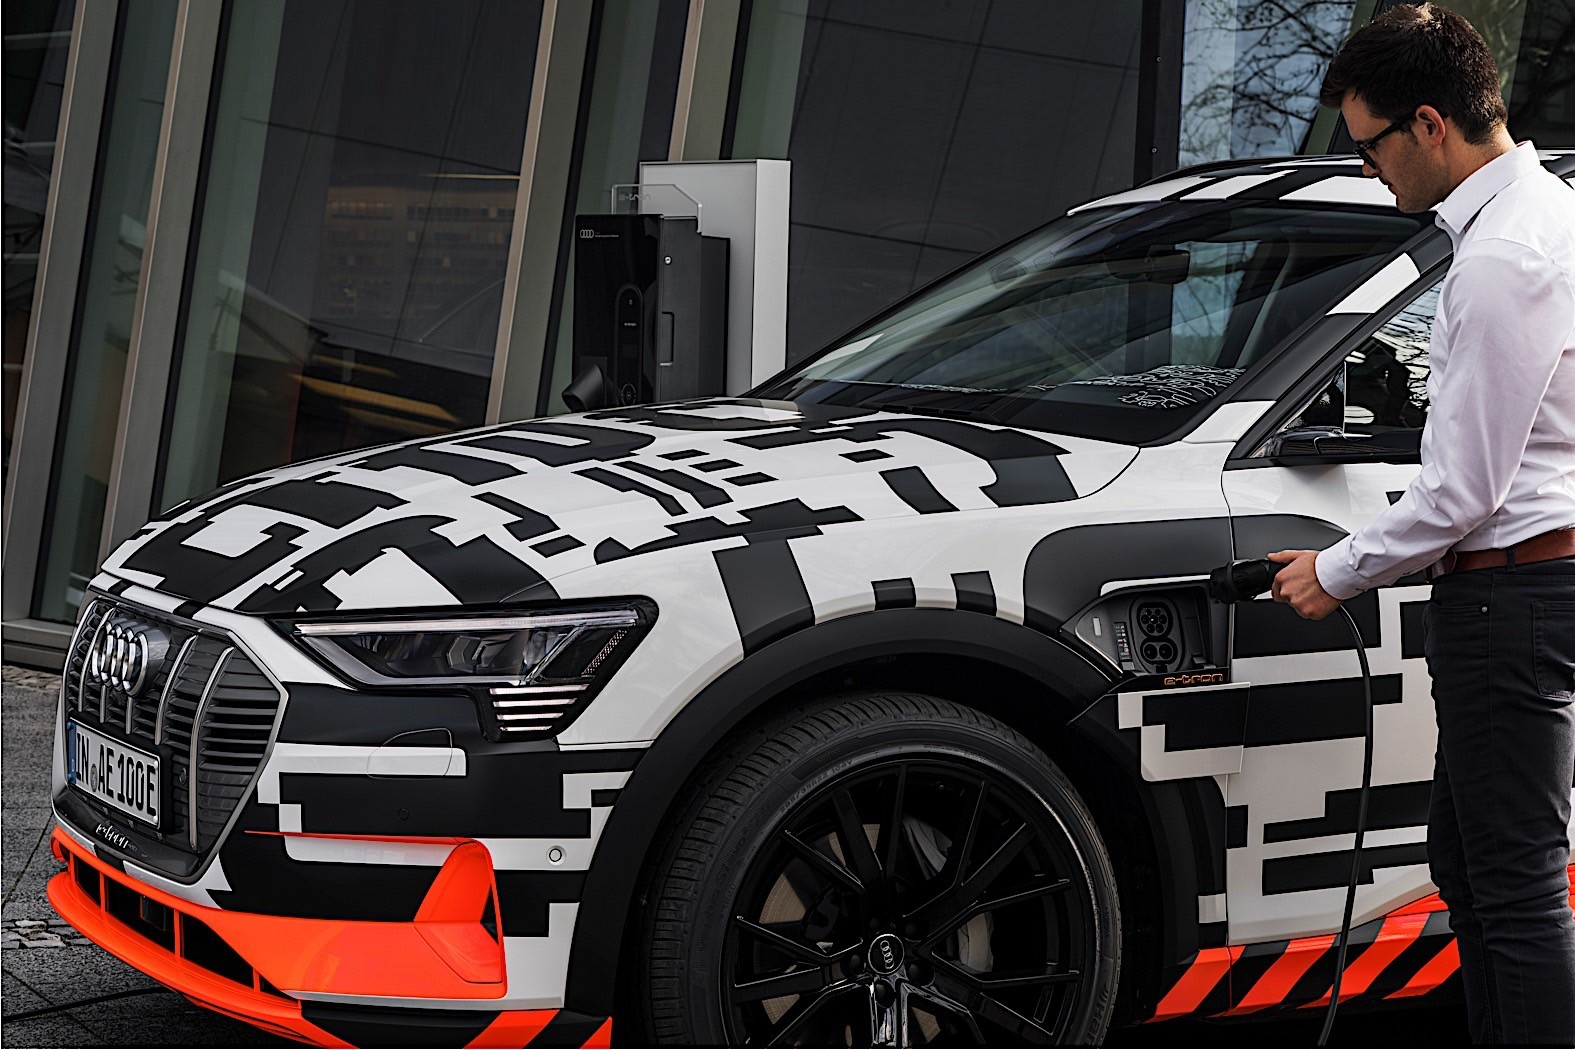 Audi's e-tron SUV drives a modest 248 miles per charge